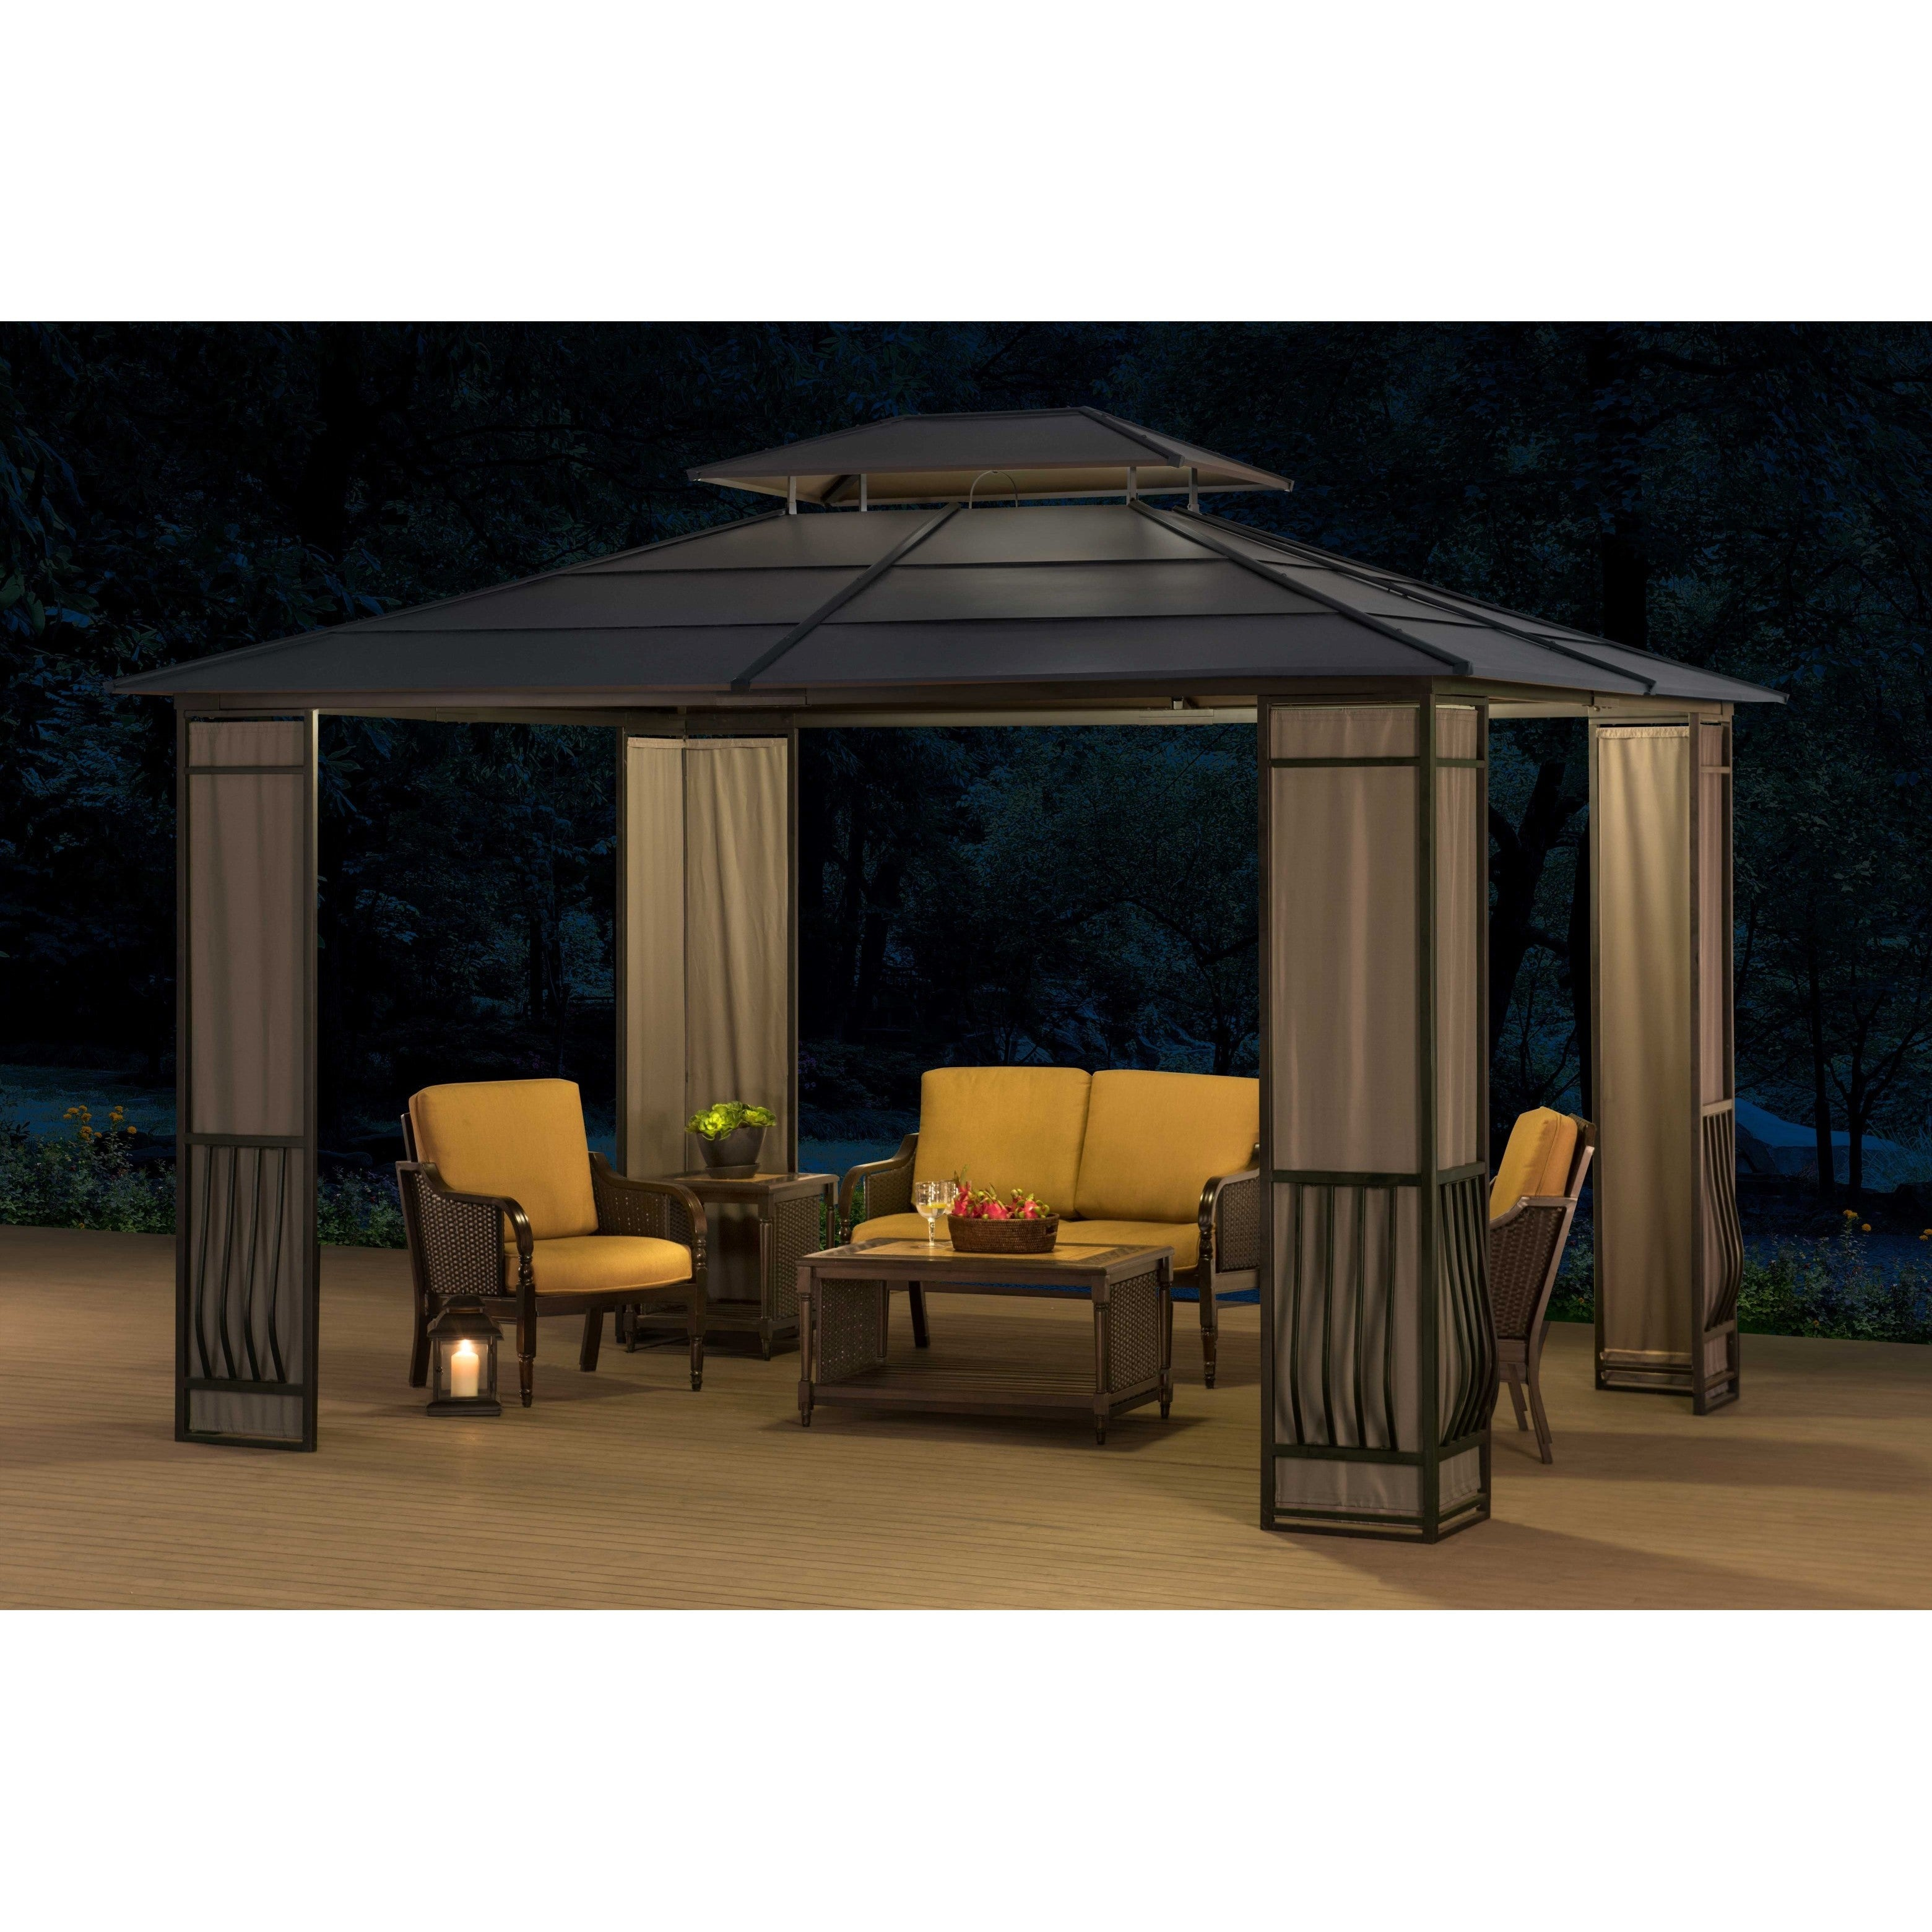 SunJoy Madison Black Top Gazebo (10' x 12'), Size 10 x 12...